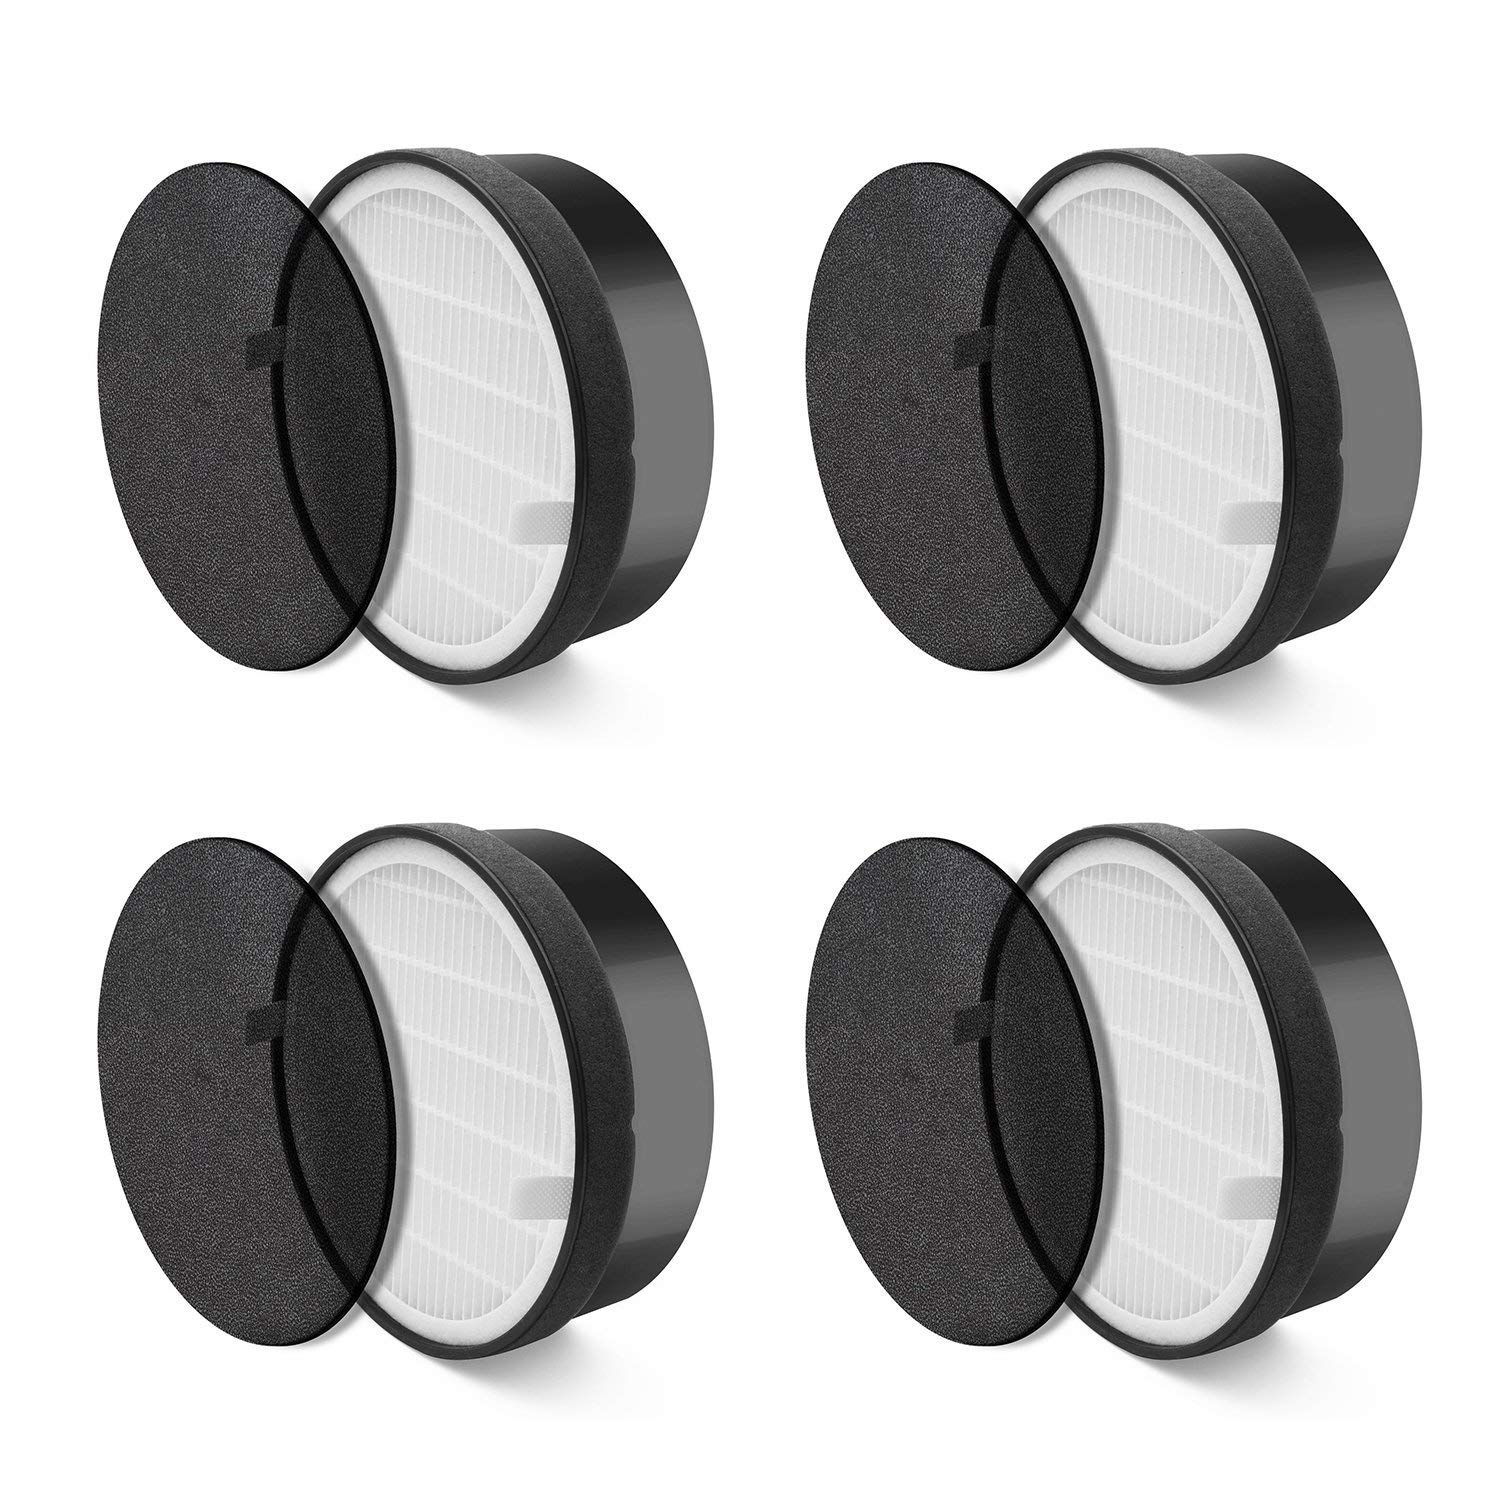 Hot Air Purifier LV-H132 Replacement Filter (4 Pack)Hot Air Purifier LV-H132 Replacement Filter (4 Pack)